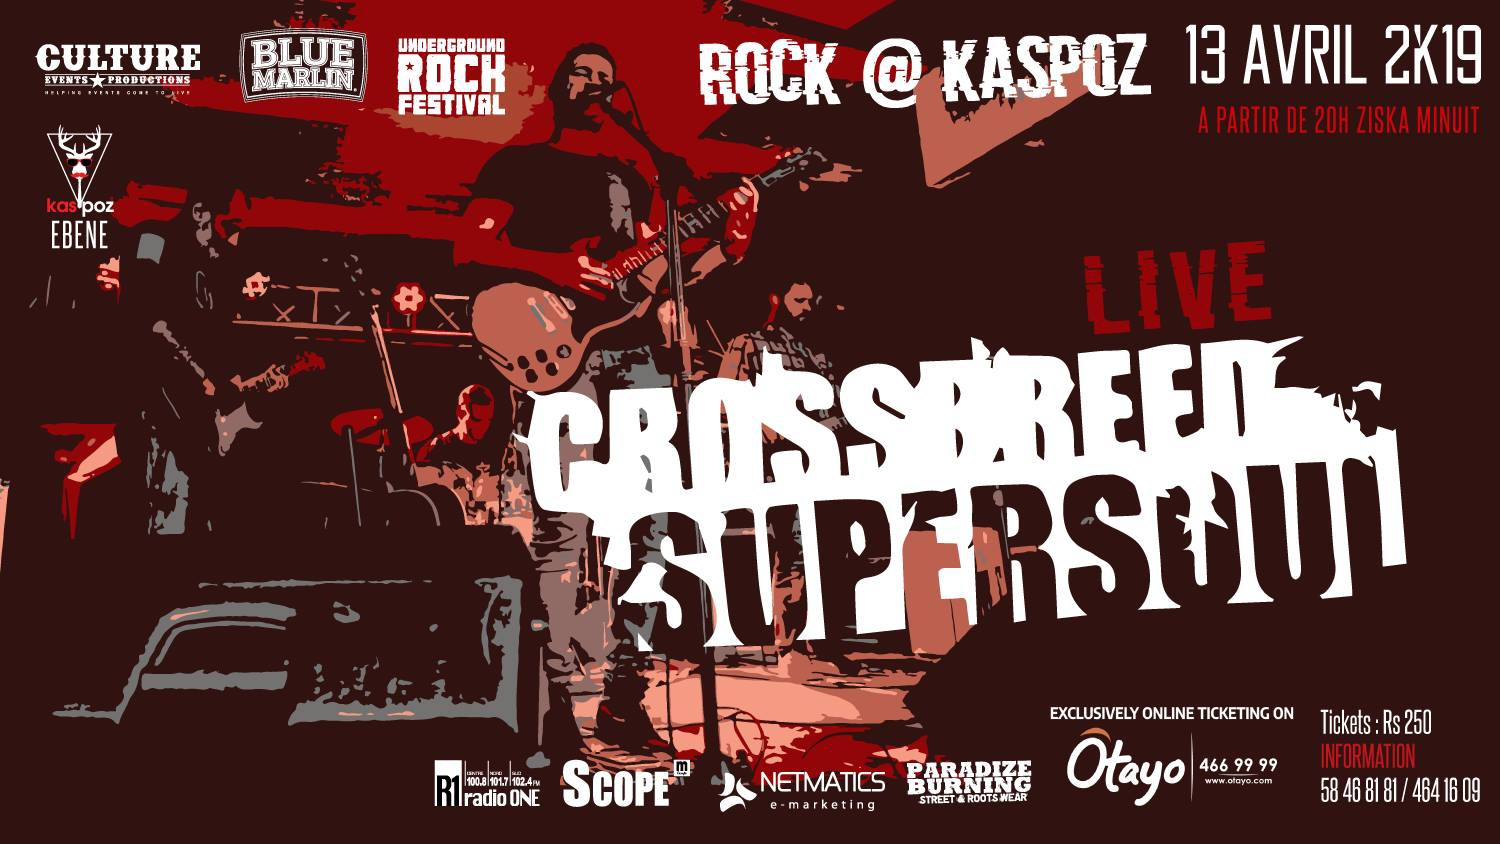 #2- Kas Poz by Crossbreed Supersoul